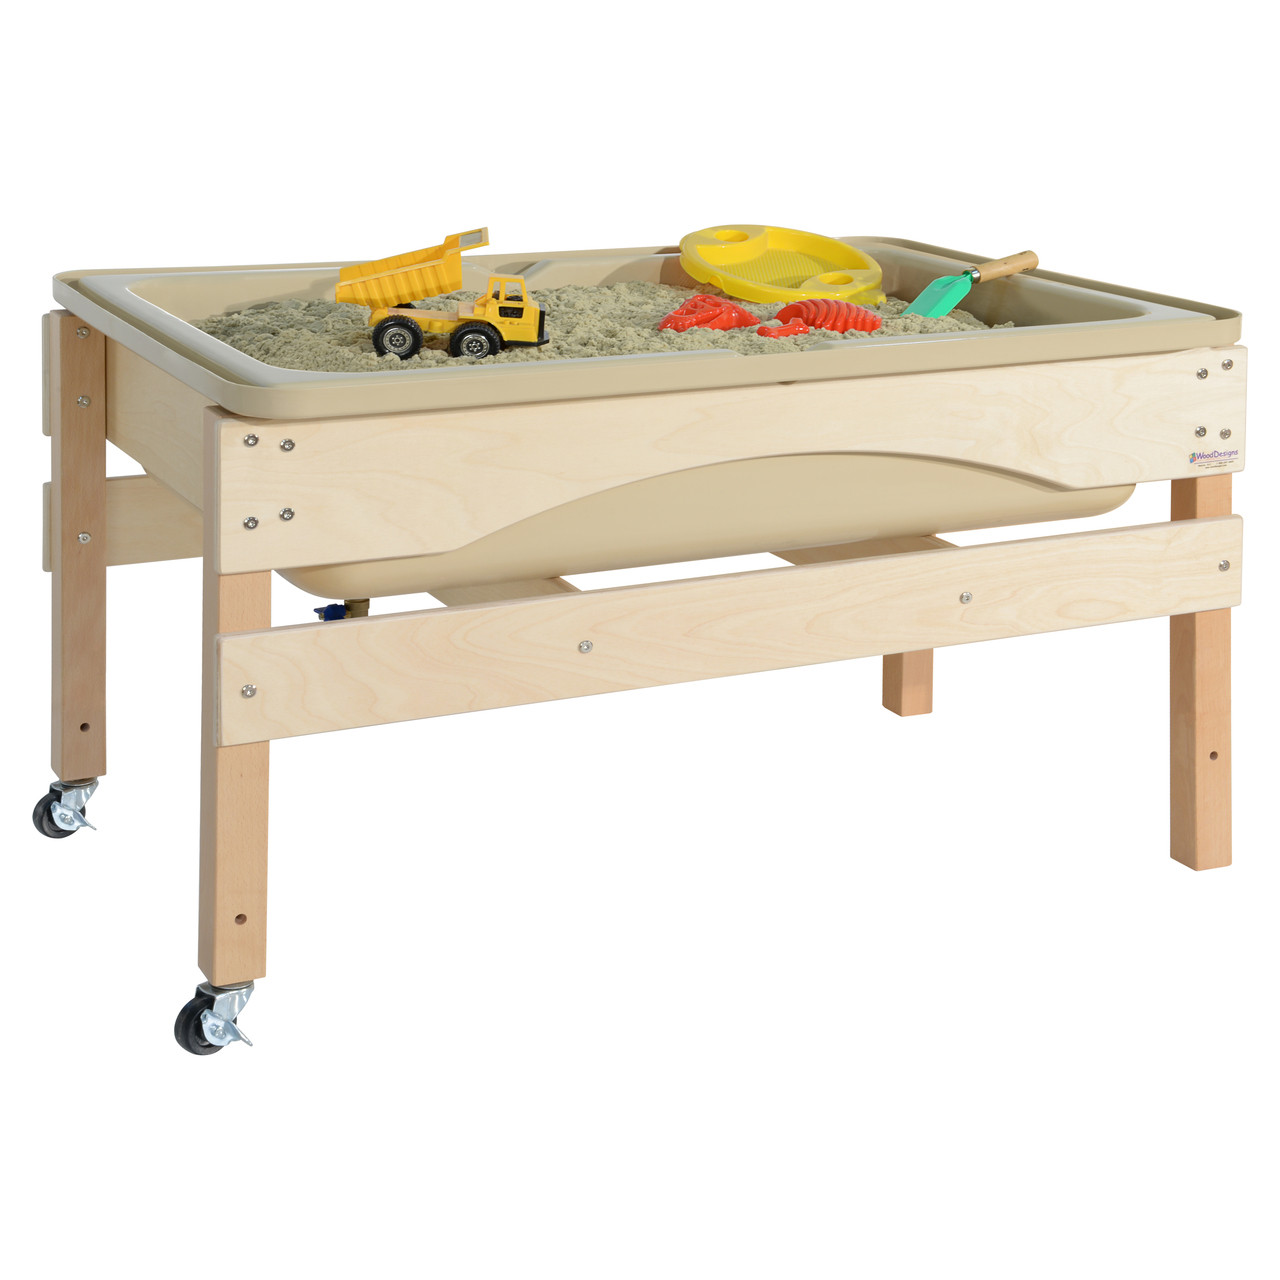 Awesome Wd11835Tn The Absolute Best Sand Water Sensory Center Without Lid Download Free Architecture Designs Scobabritishbridgeorg